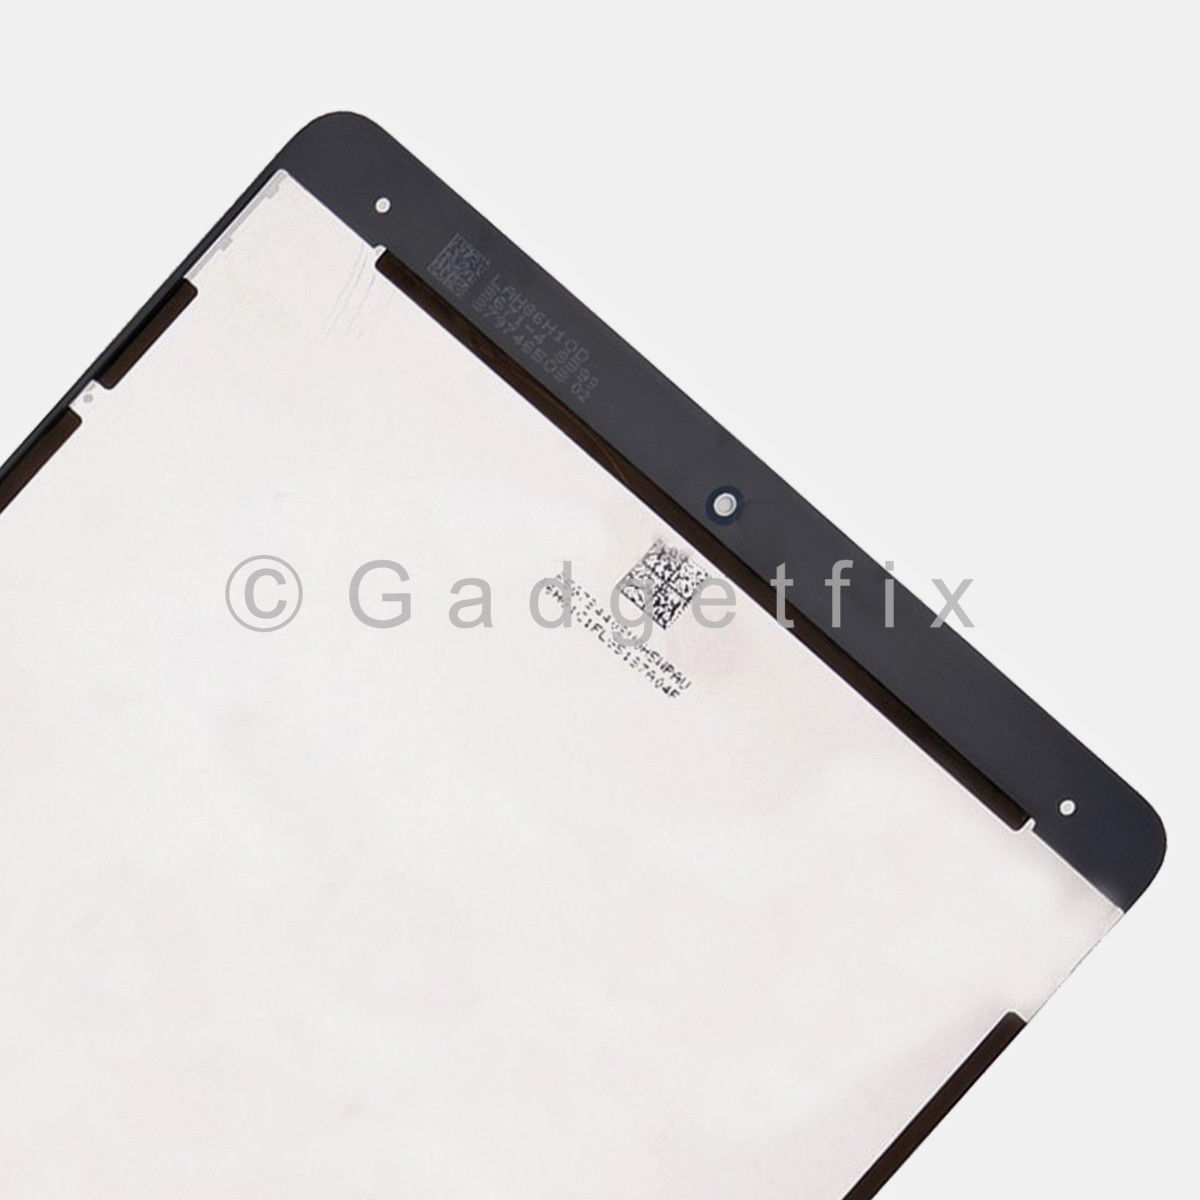 White LCD Screen Display Touch Screen Digitizer For iPad Pro 10.5 A1701 A1709